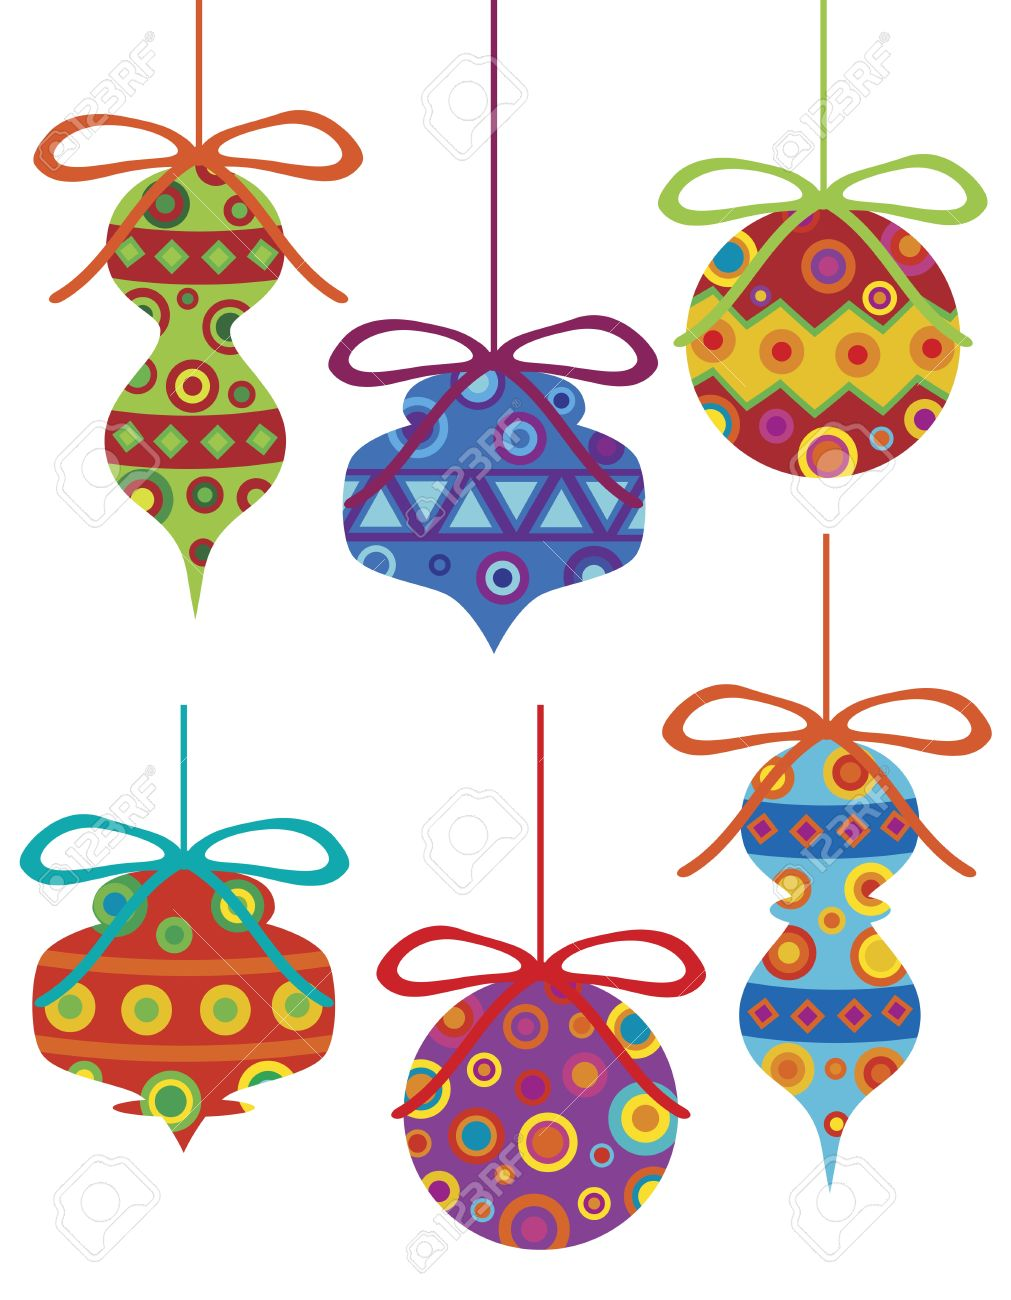 Christmas Tree Ornament with Bright Colorful Tribal Motifs Illustration Isolated on White Background Stock Vector - 16729382